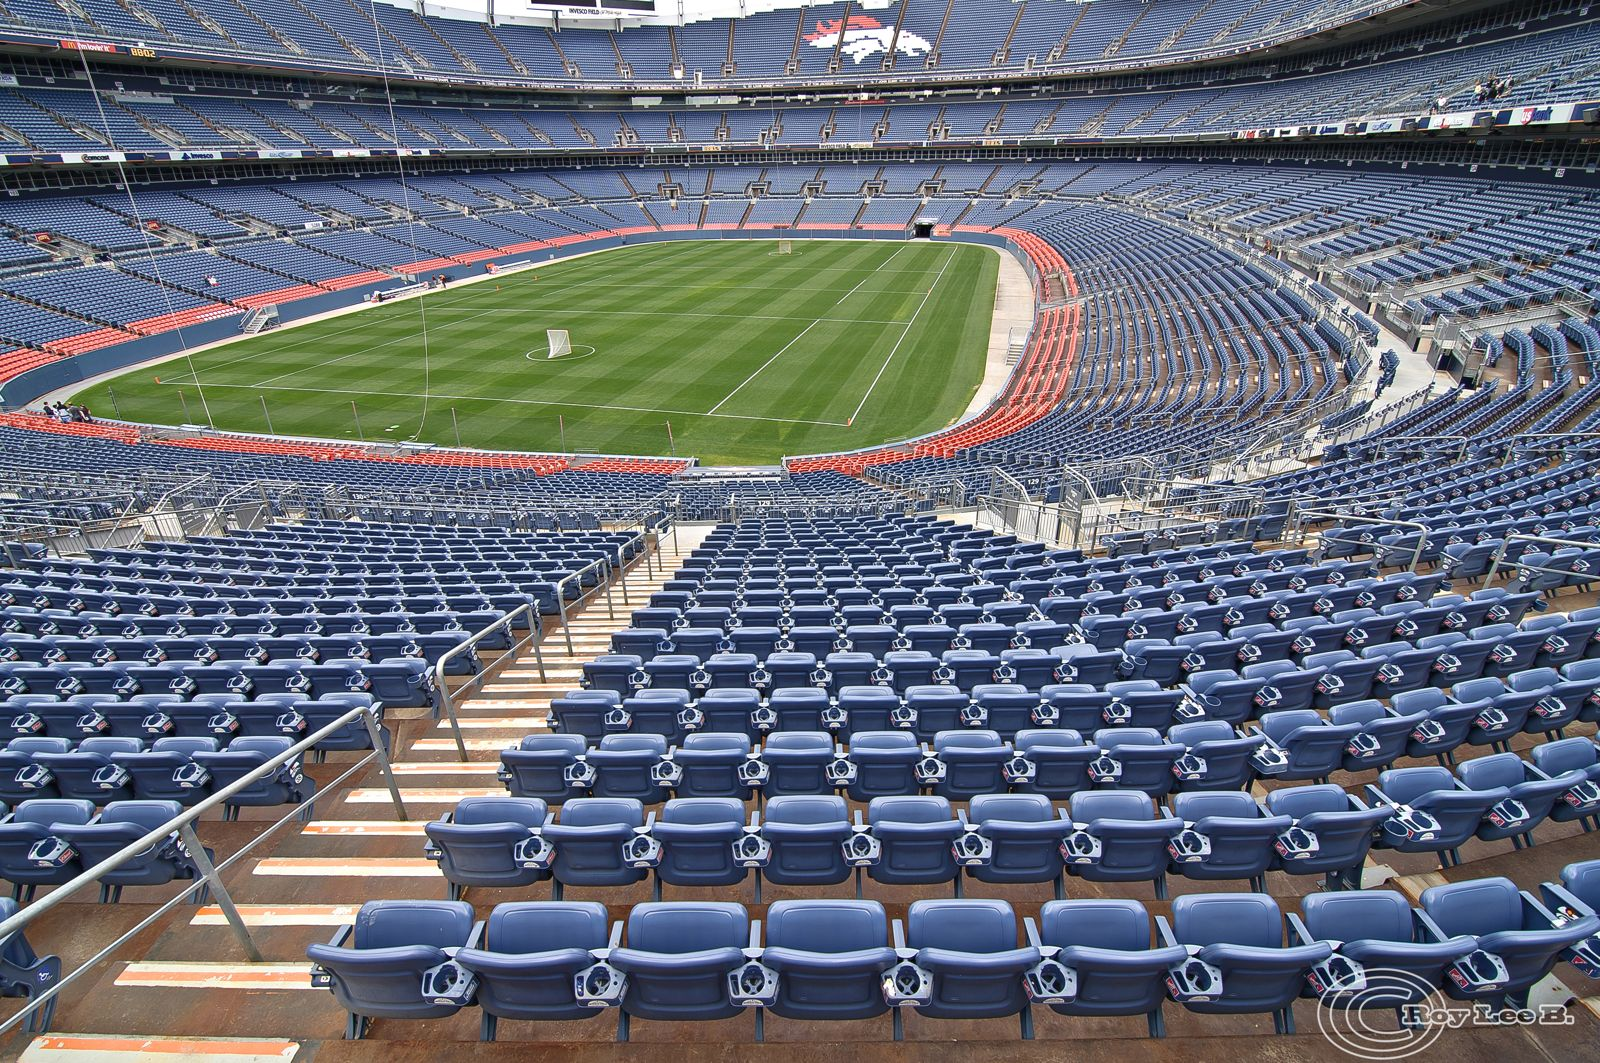 Sports Authority Field at Mile High (New Mile High Stadium